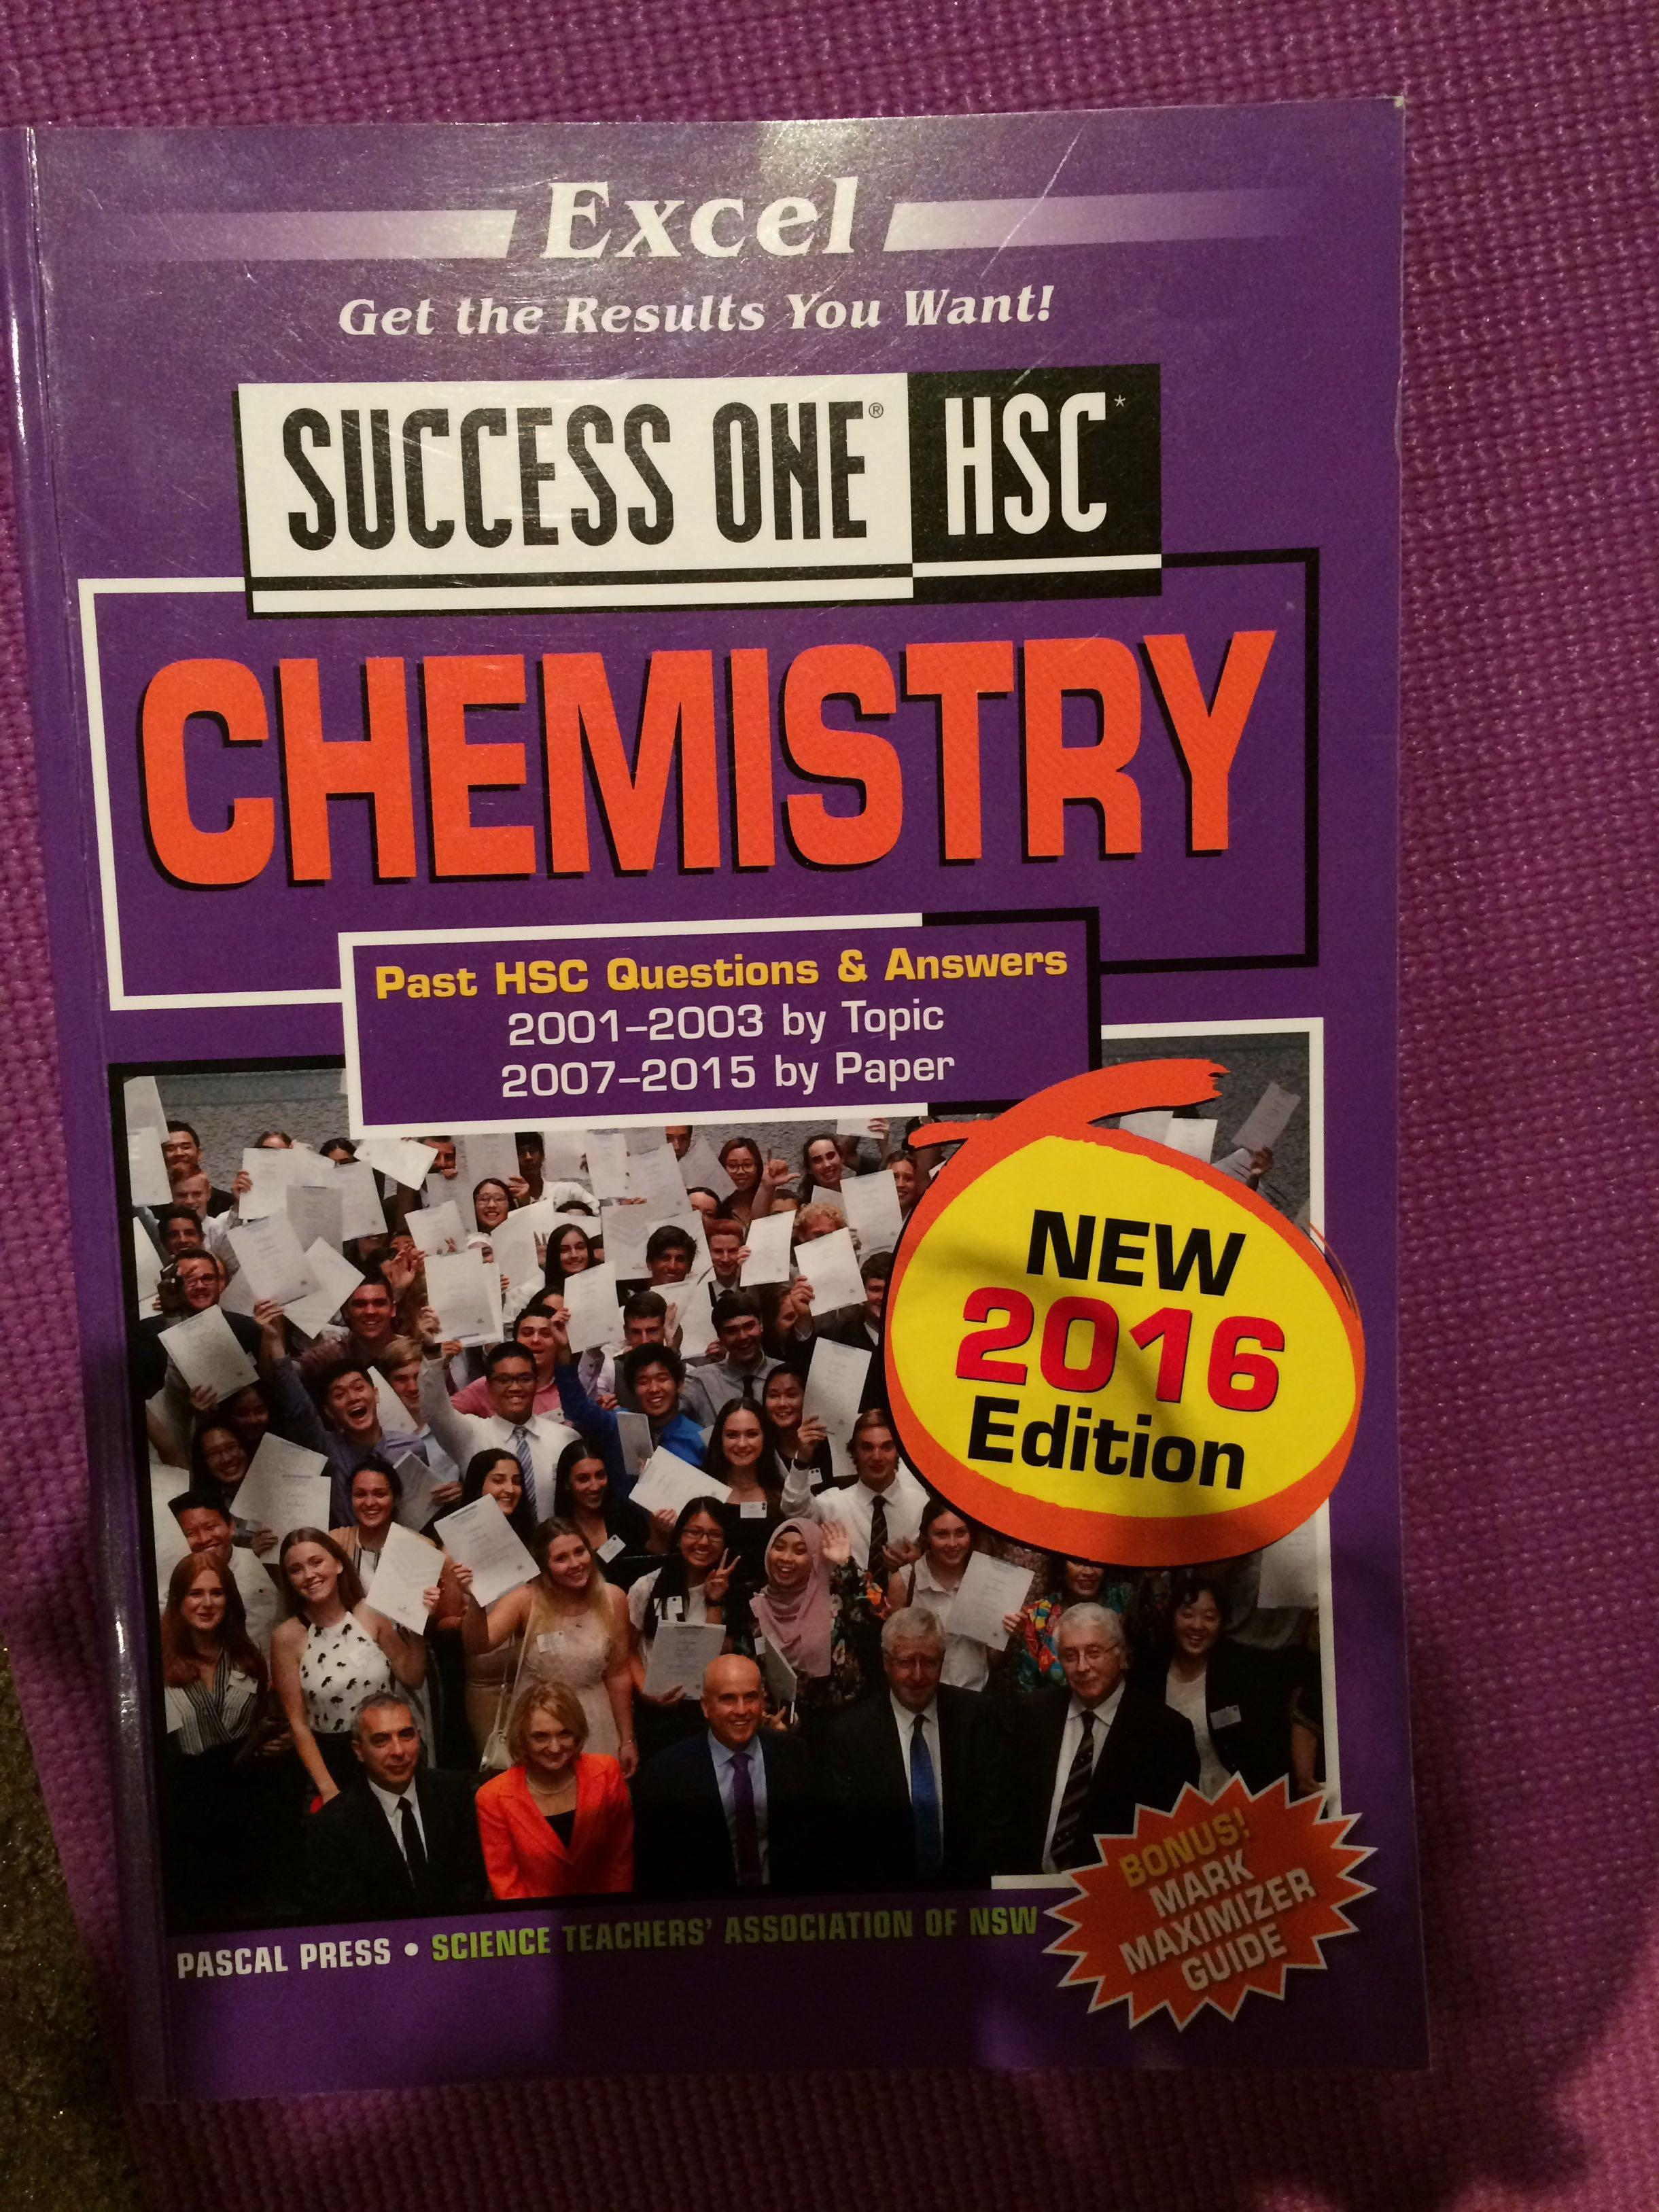 Conquering chemistry, excel chemistry, past papers